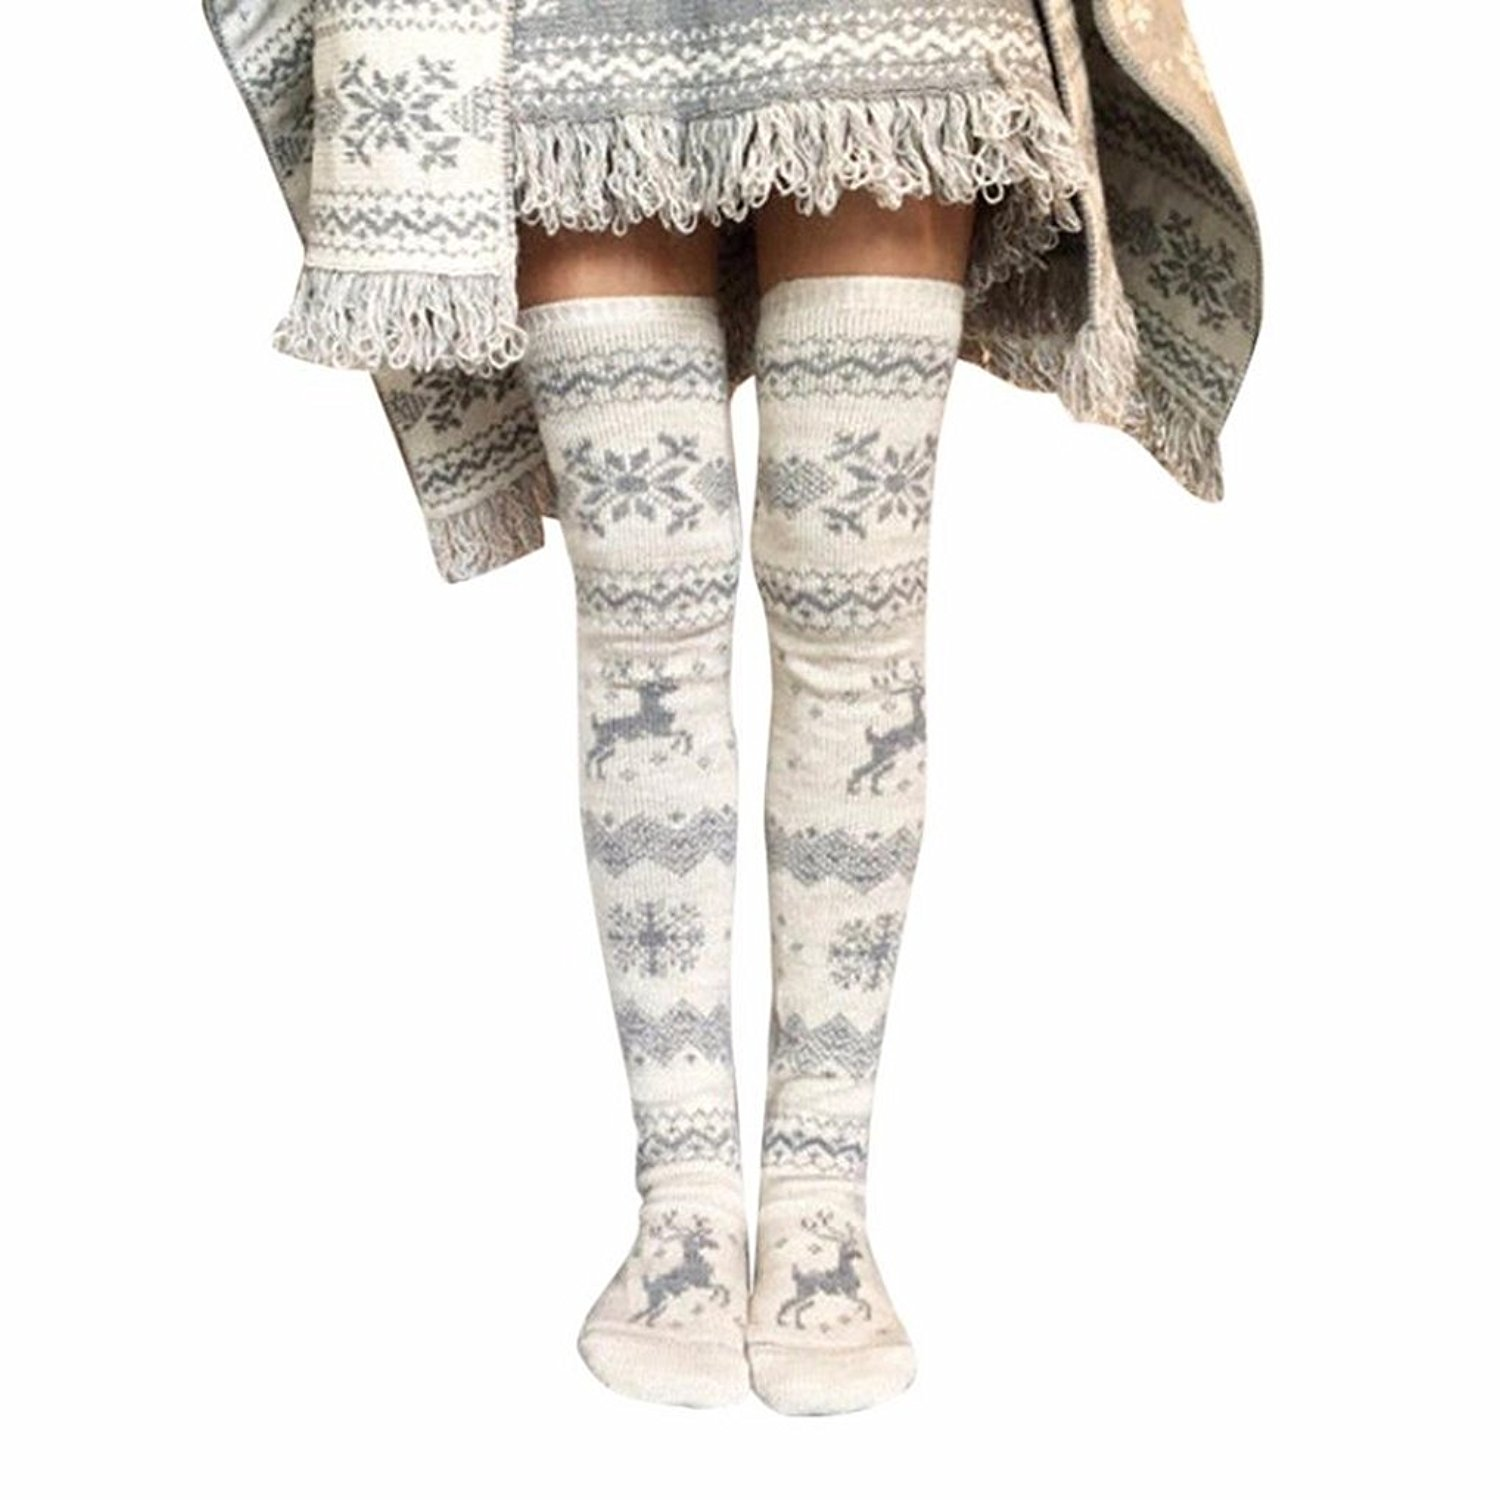 c777cfdb8a76b Get Quotations · Appoi Christmas Thigh High Stocking Winter Women Sexy Thigh  High Long Stockings Knit Over Knee Socks